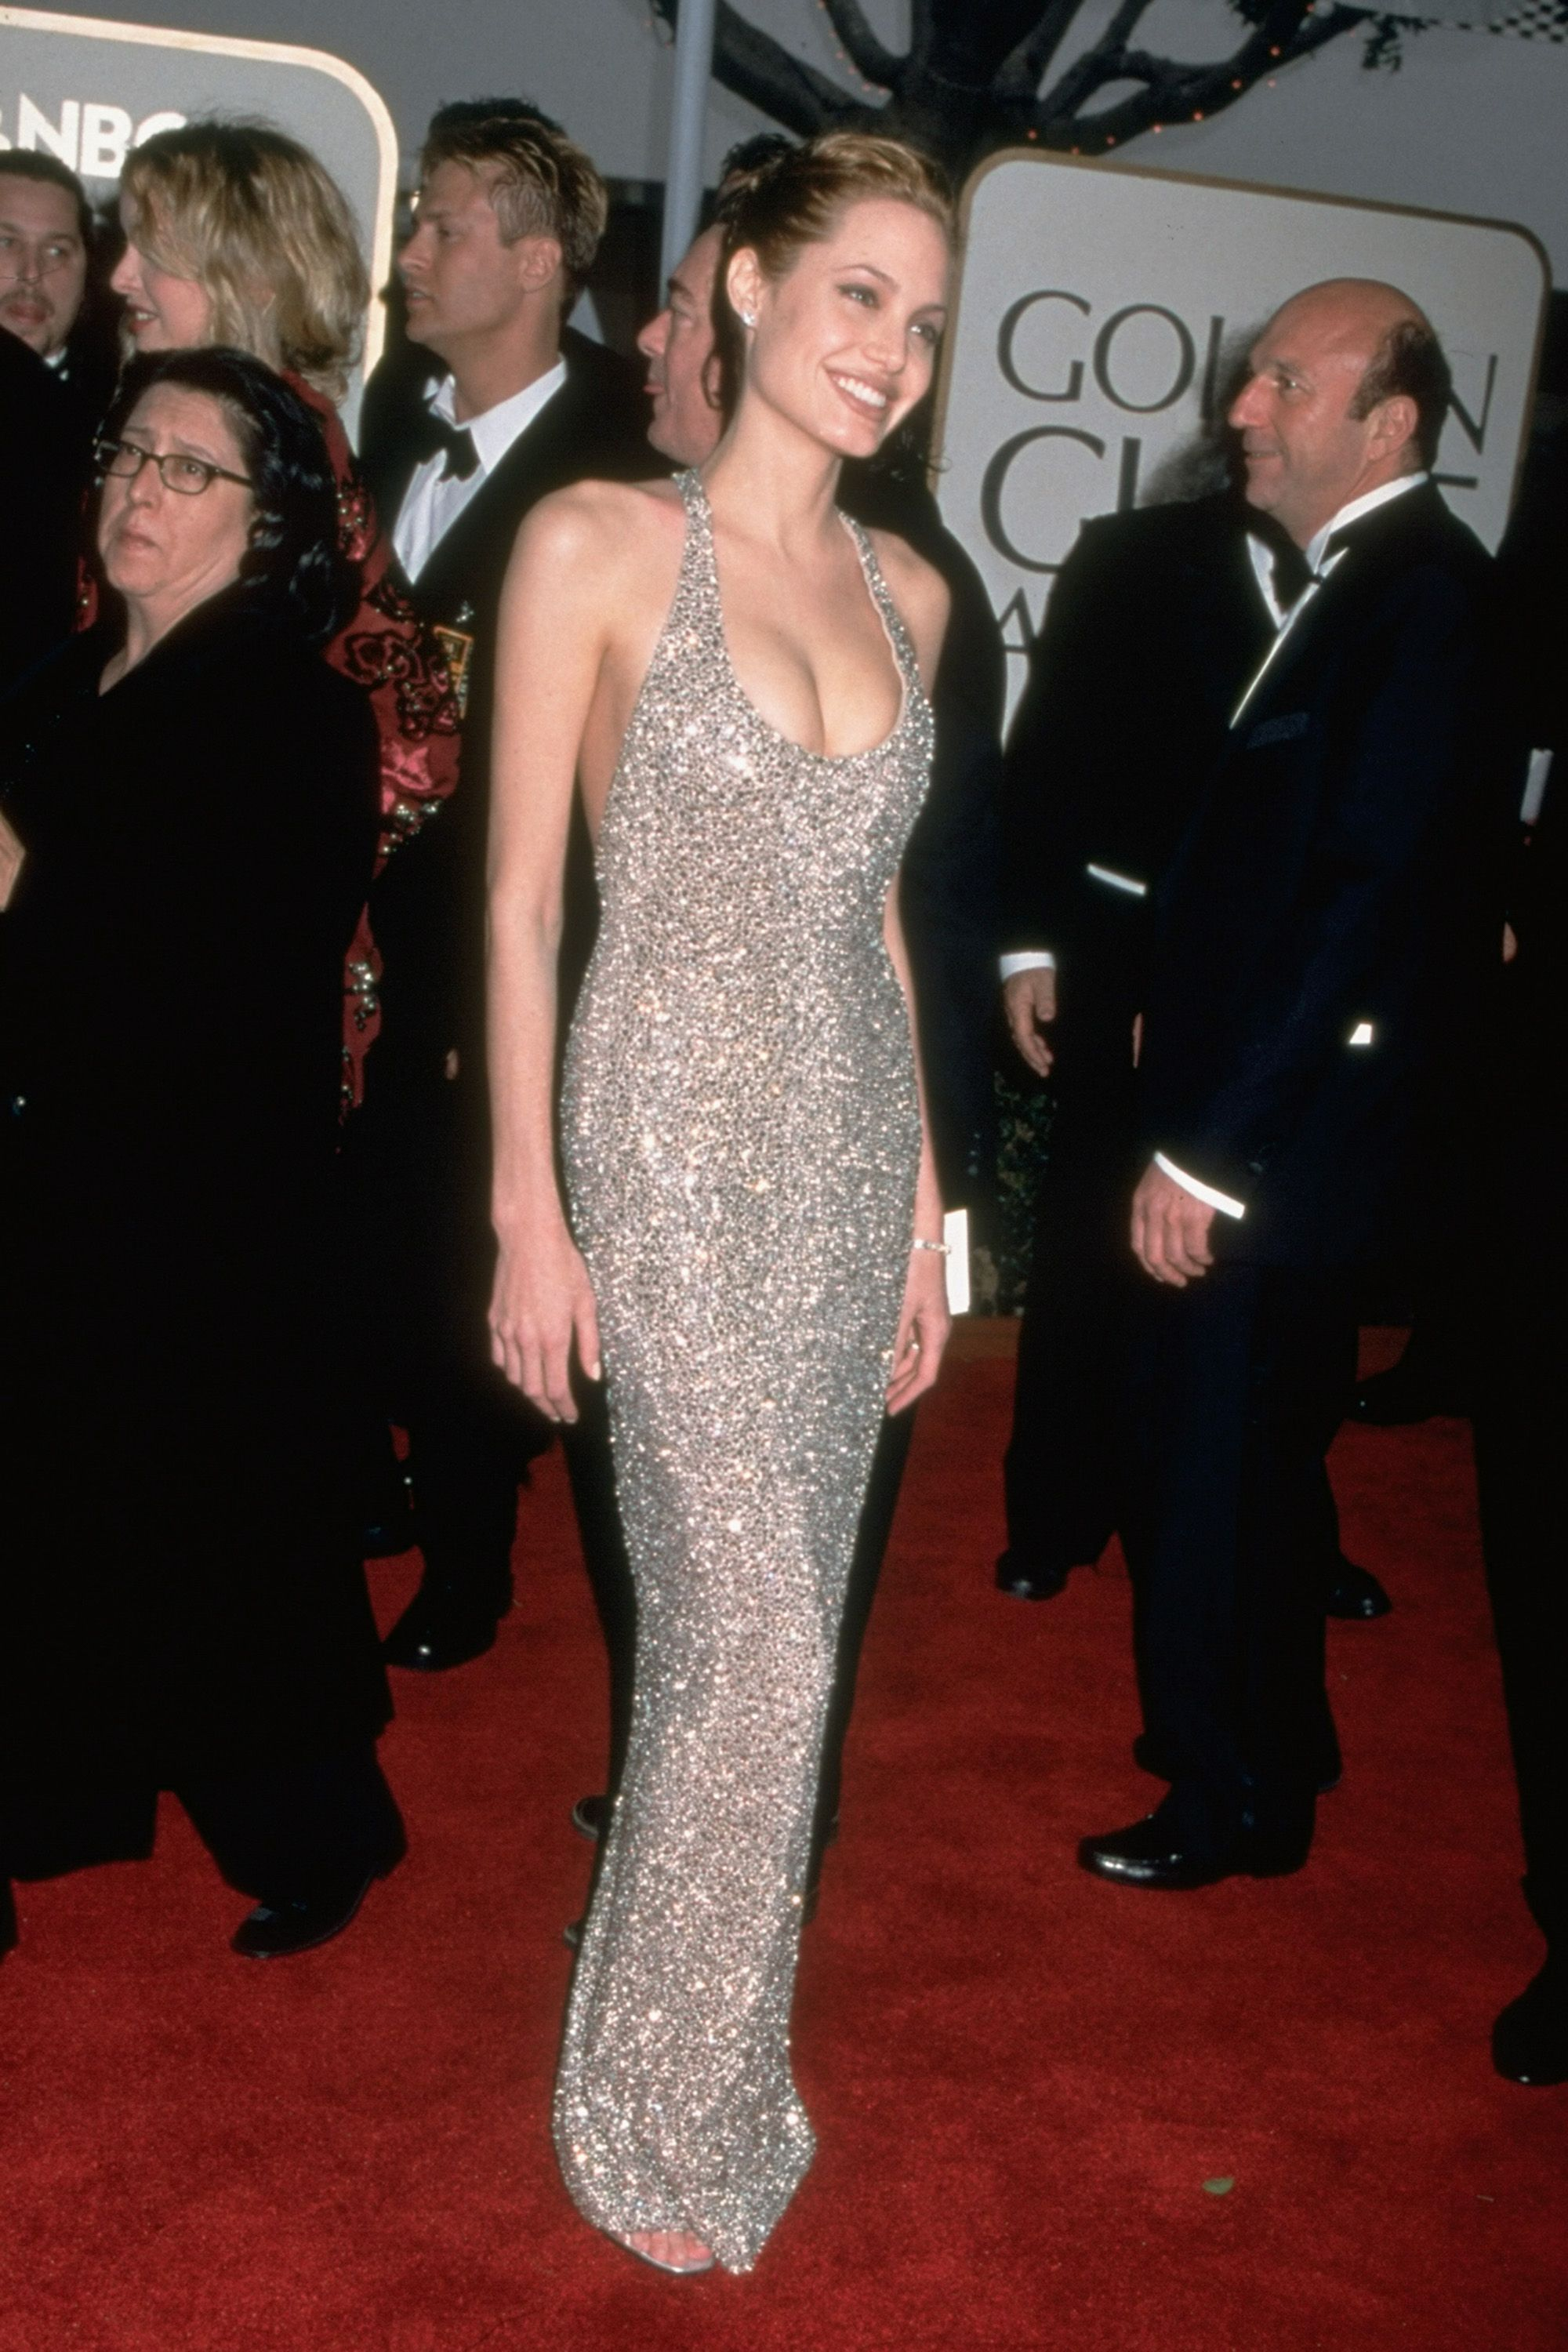 Actress Angelina Jolie (in Randolph Duke) at the Golden Globe awards.  (Photo by Tammie Arroyo/The LIFE Images Collection/Getty Images)